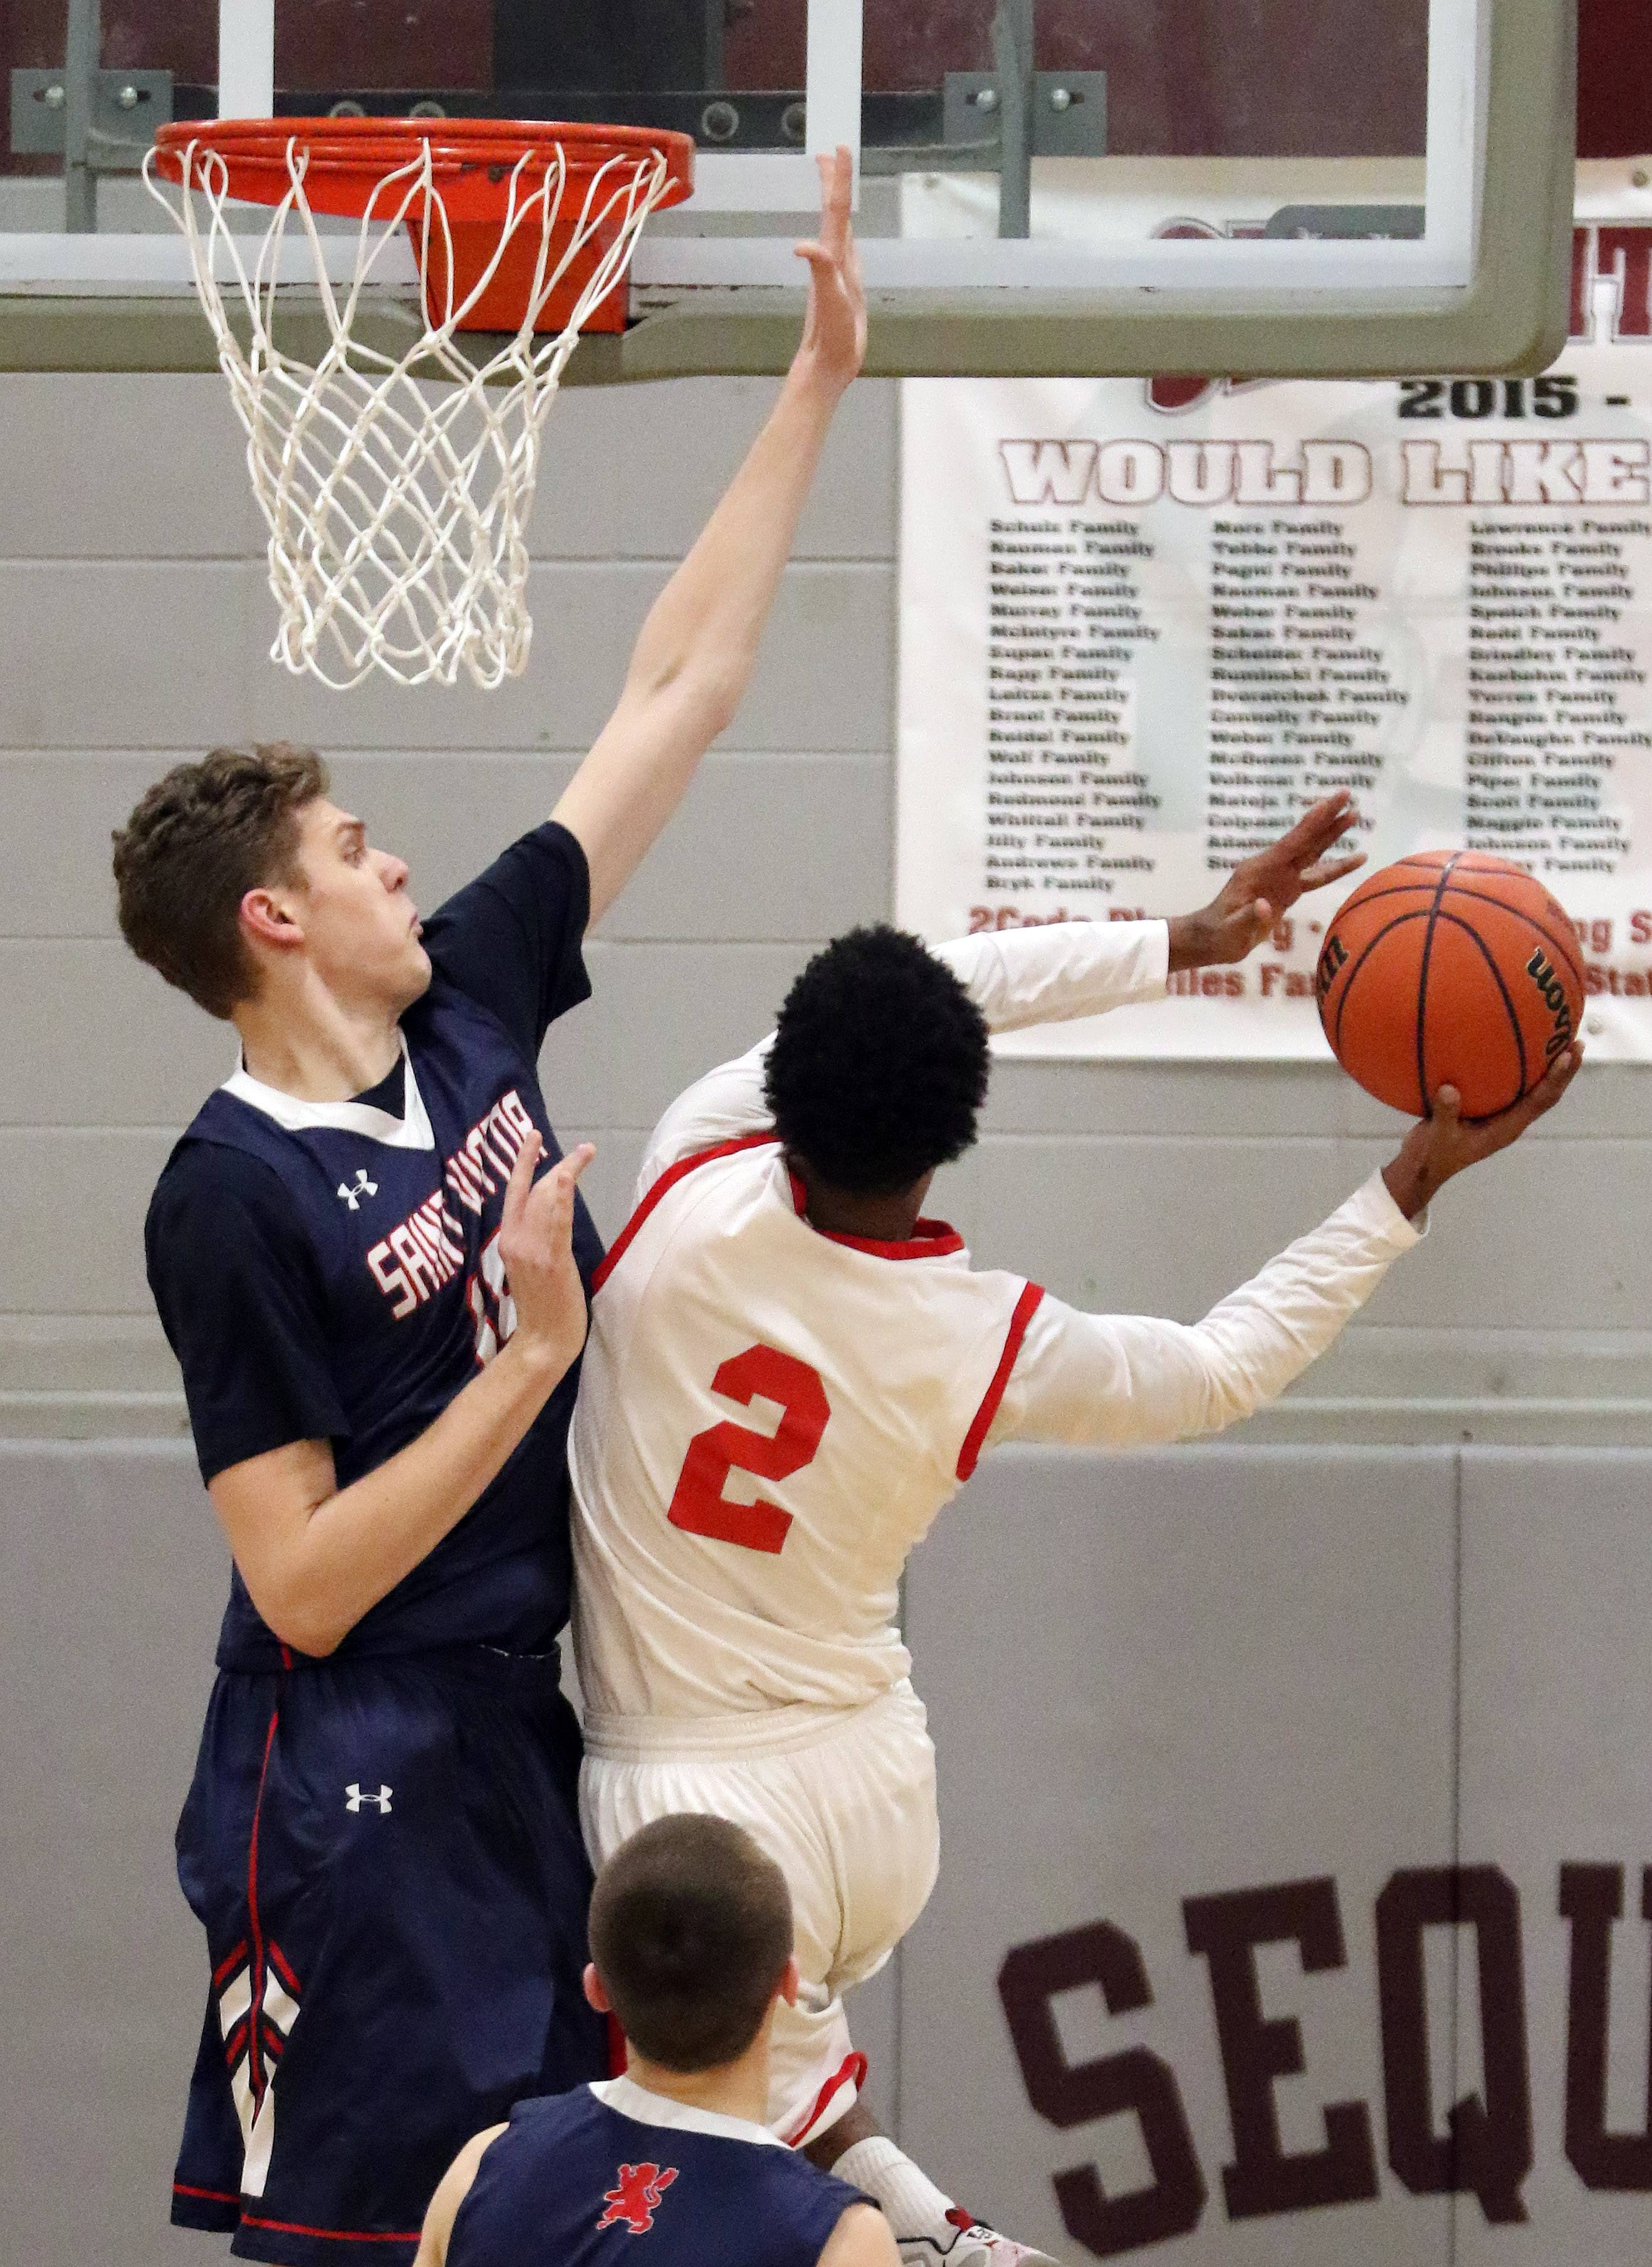 St. Viator's Addison Lubert, left, defends against North Chicago's Ishaun Walker in the Class 3A sectional final at Antioch on Friday.